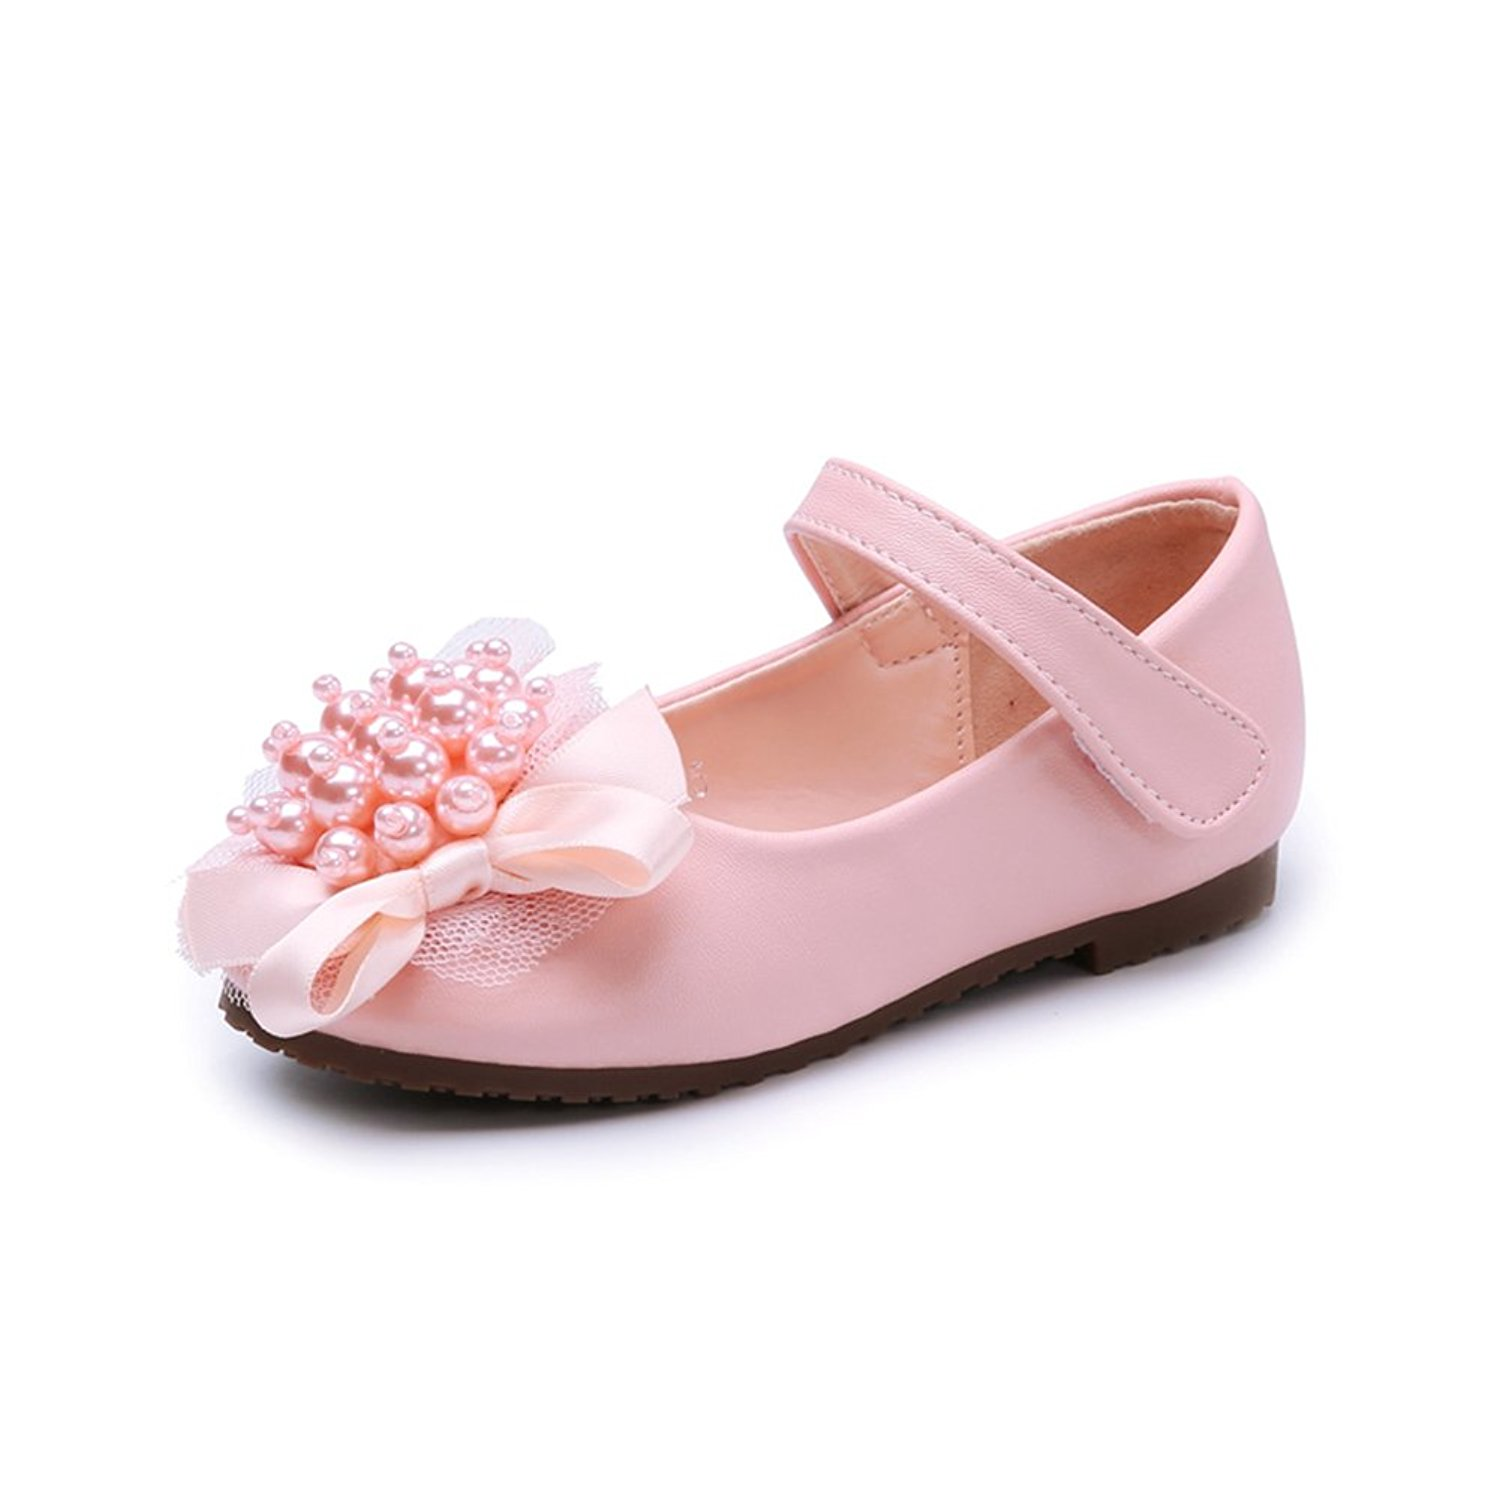 Veribuy Toddlers/Little Girls/Big Girls Pearl Flower Dress Shoes Flat Princess Shoes Wedding Shoes